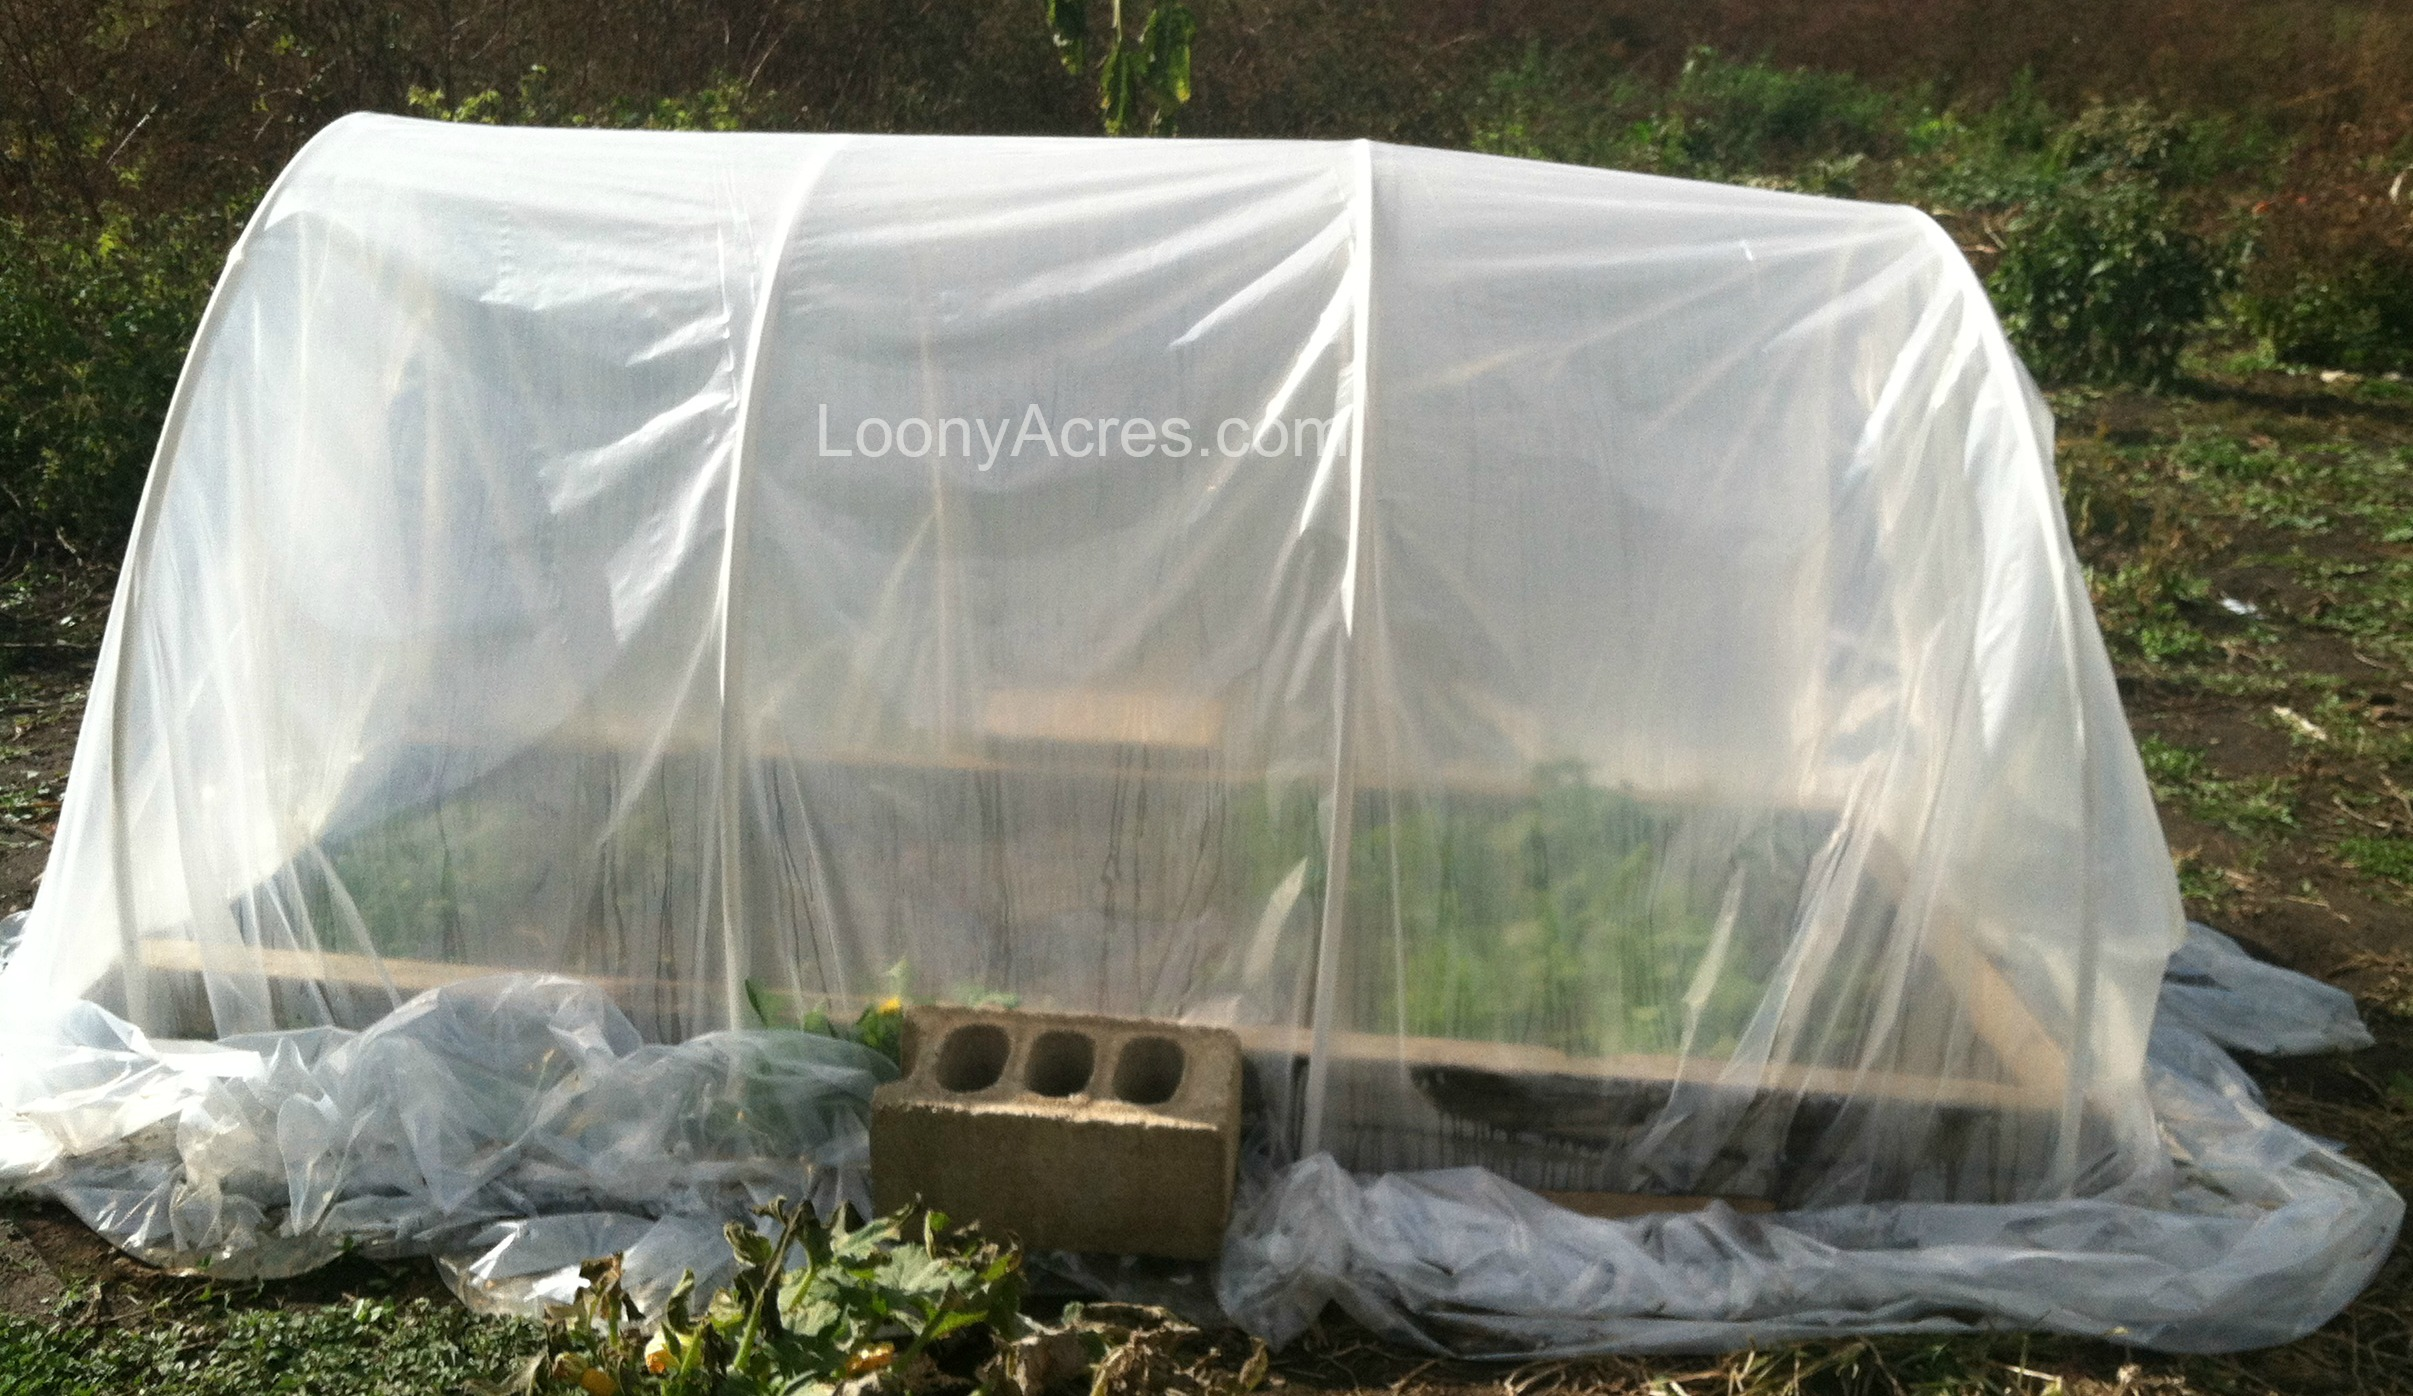 LoonyAcres Mini Greenhouse 2